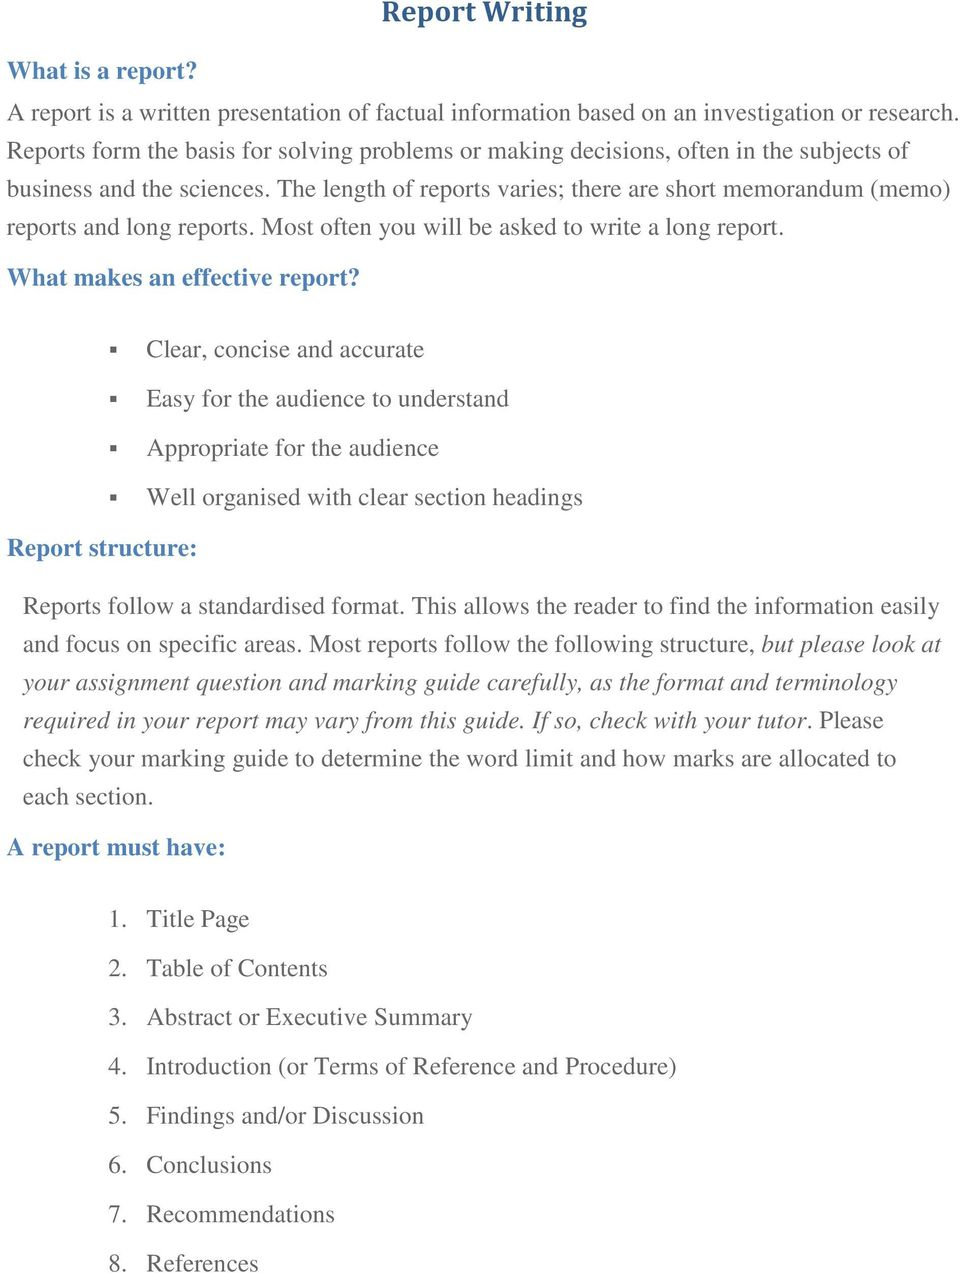 Report Writing  What makes an effective report? - PDF